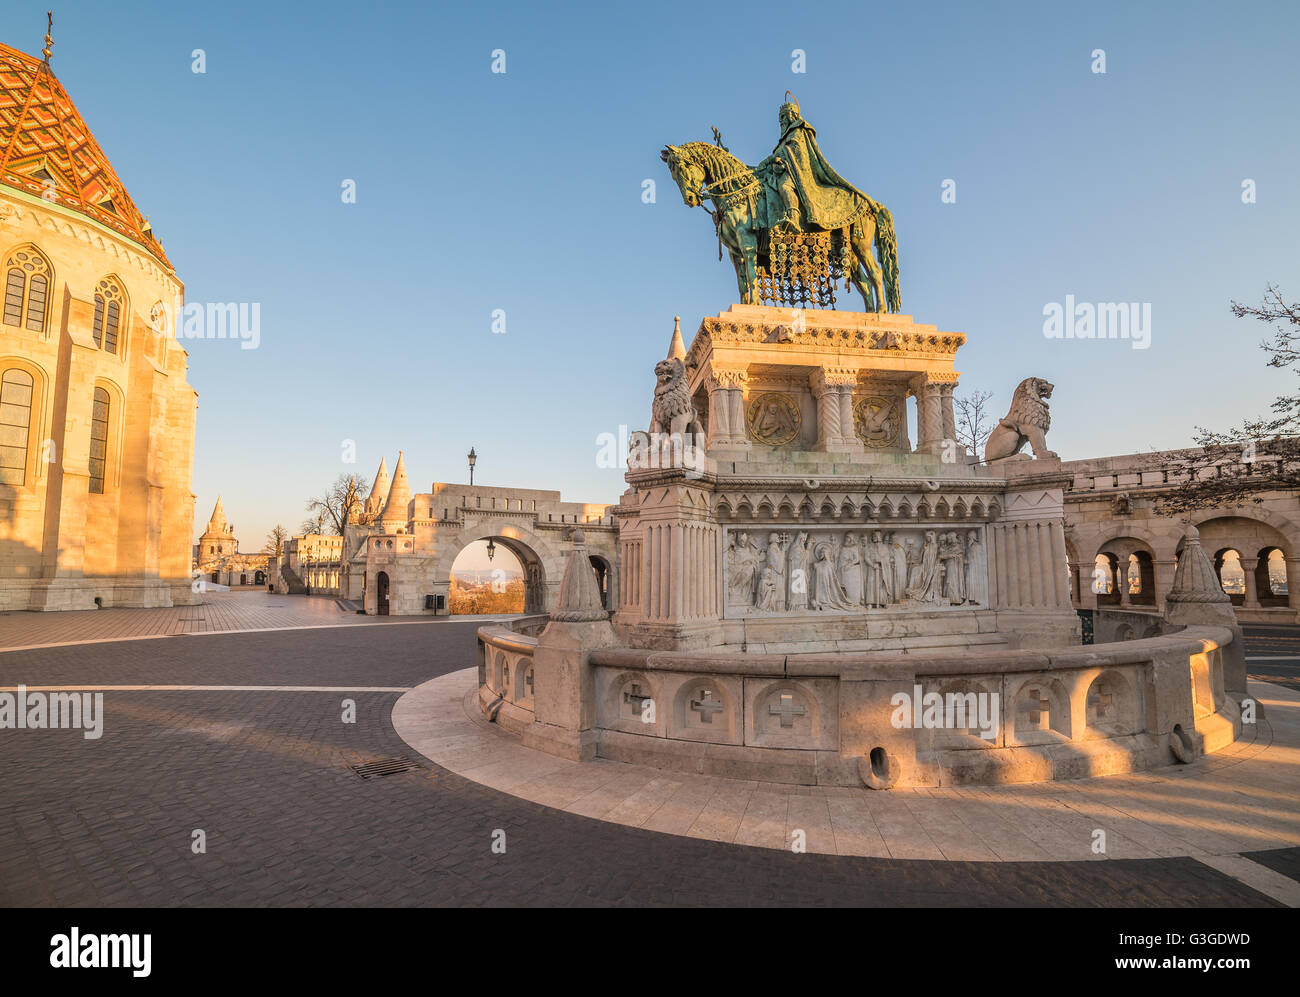 Saint Stefan Statue at Fisherman's Bastion, in Budapest, Hungary with Clear Blue Sky in Background at Sunrise Stock Photo